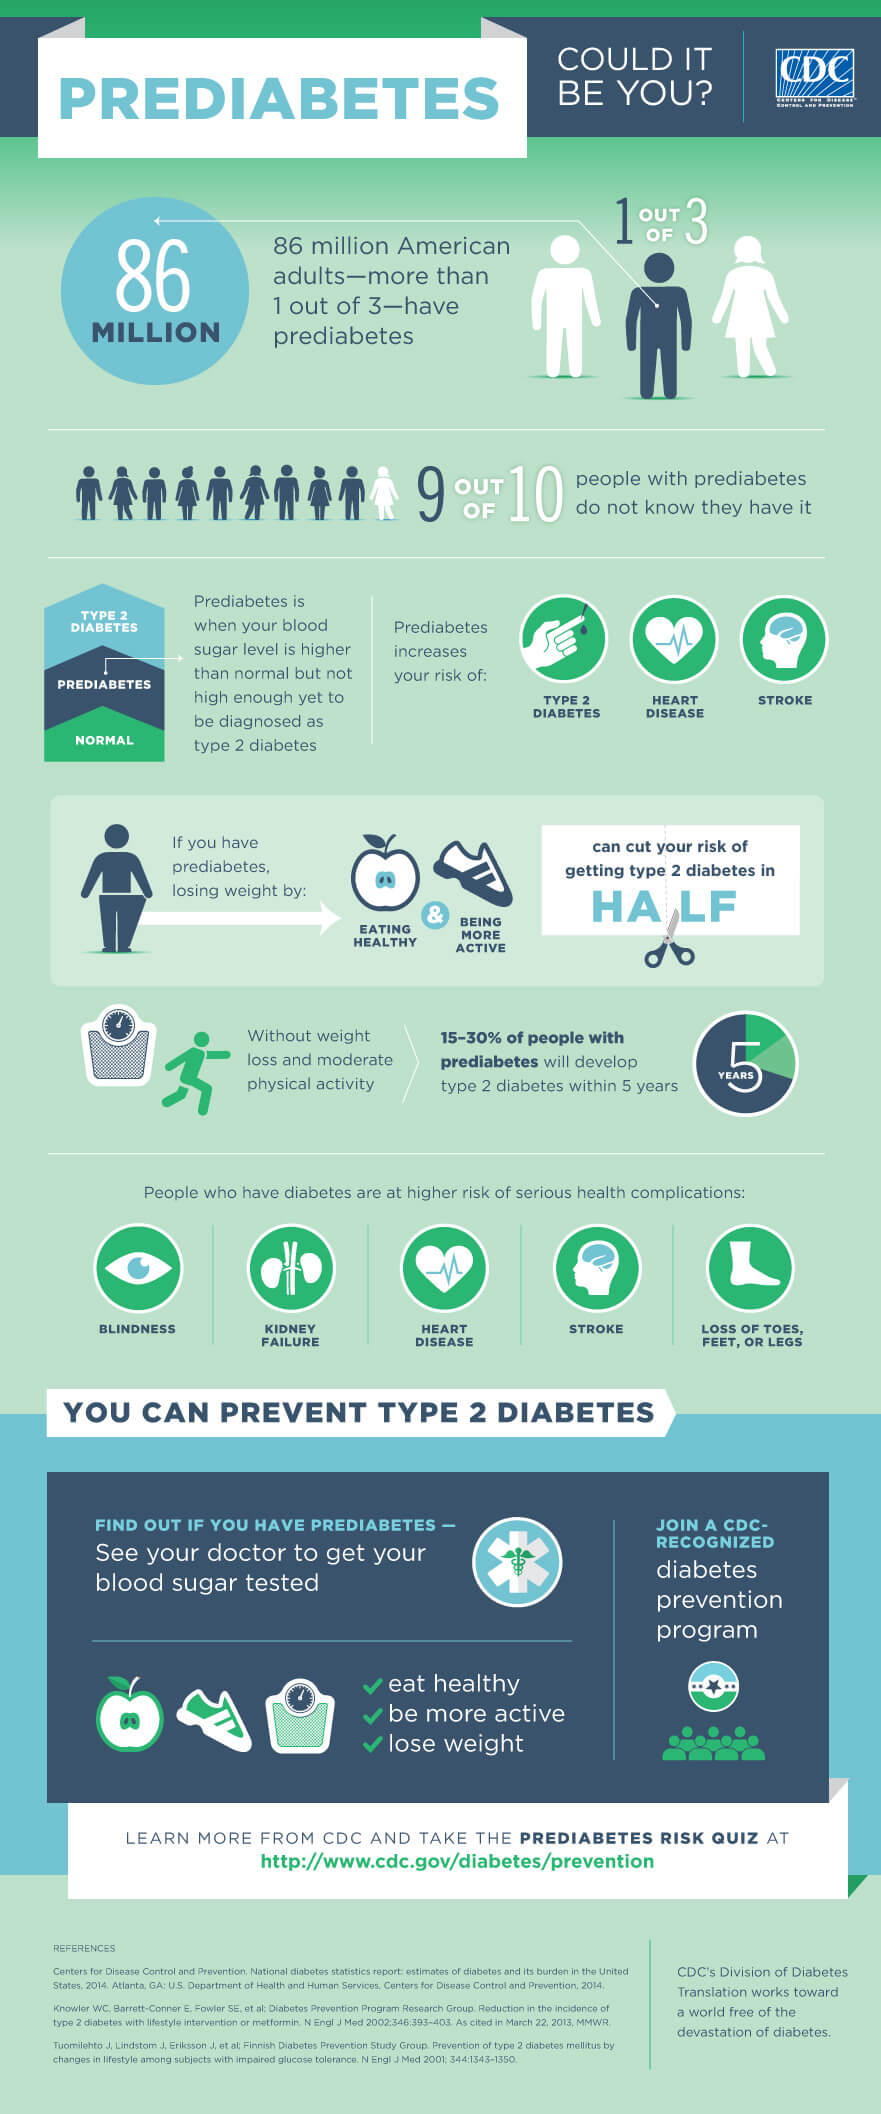 prediabetes infographic from the CDC